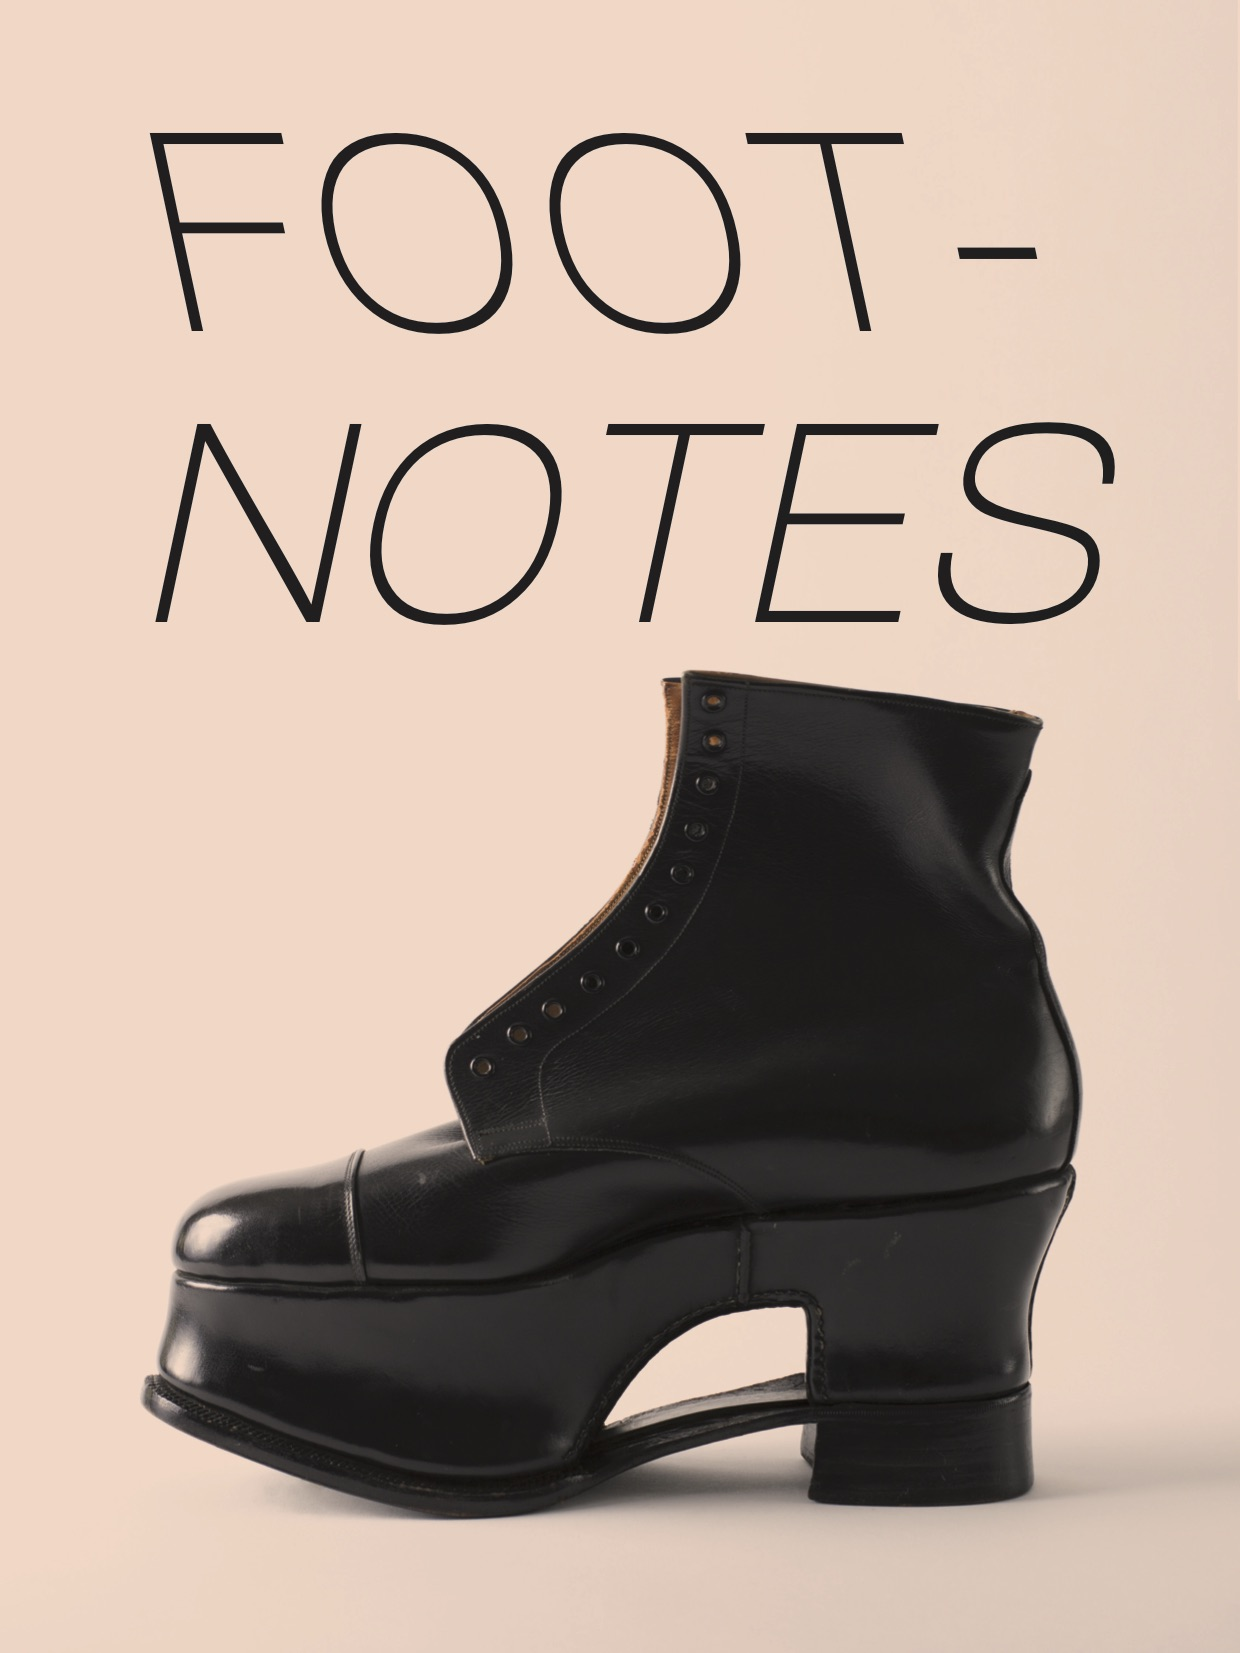 Footnotes_Intimate Stories_of_Shoes .jpg